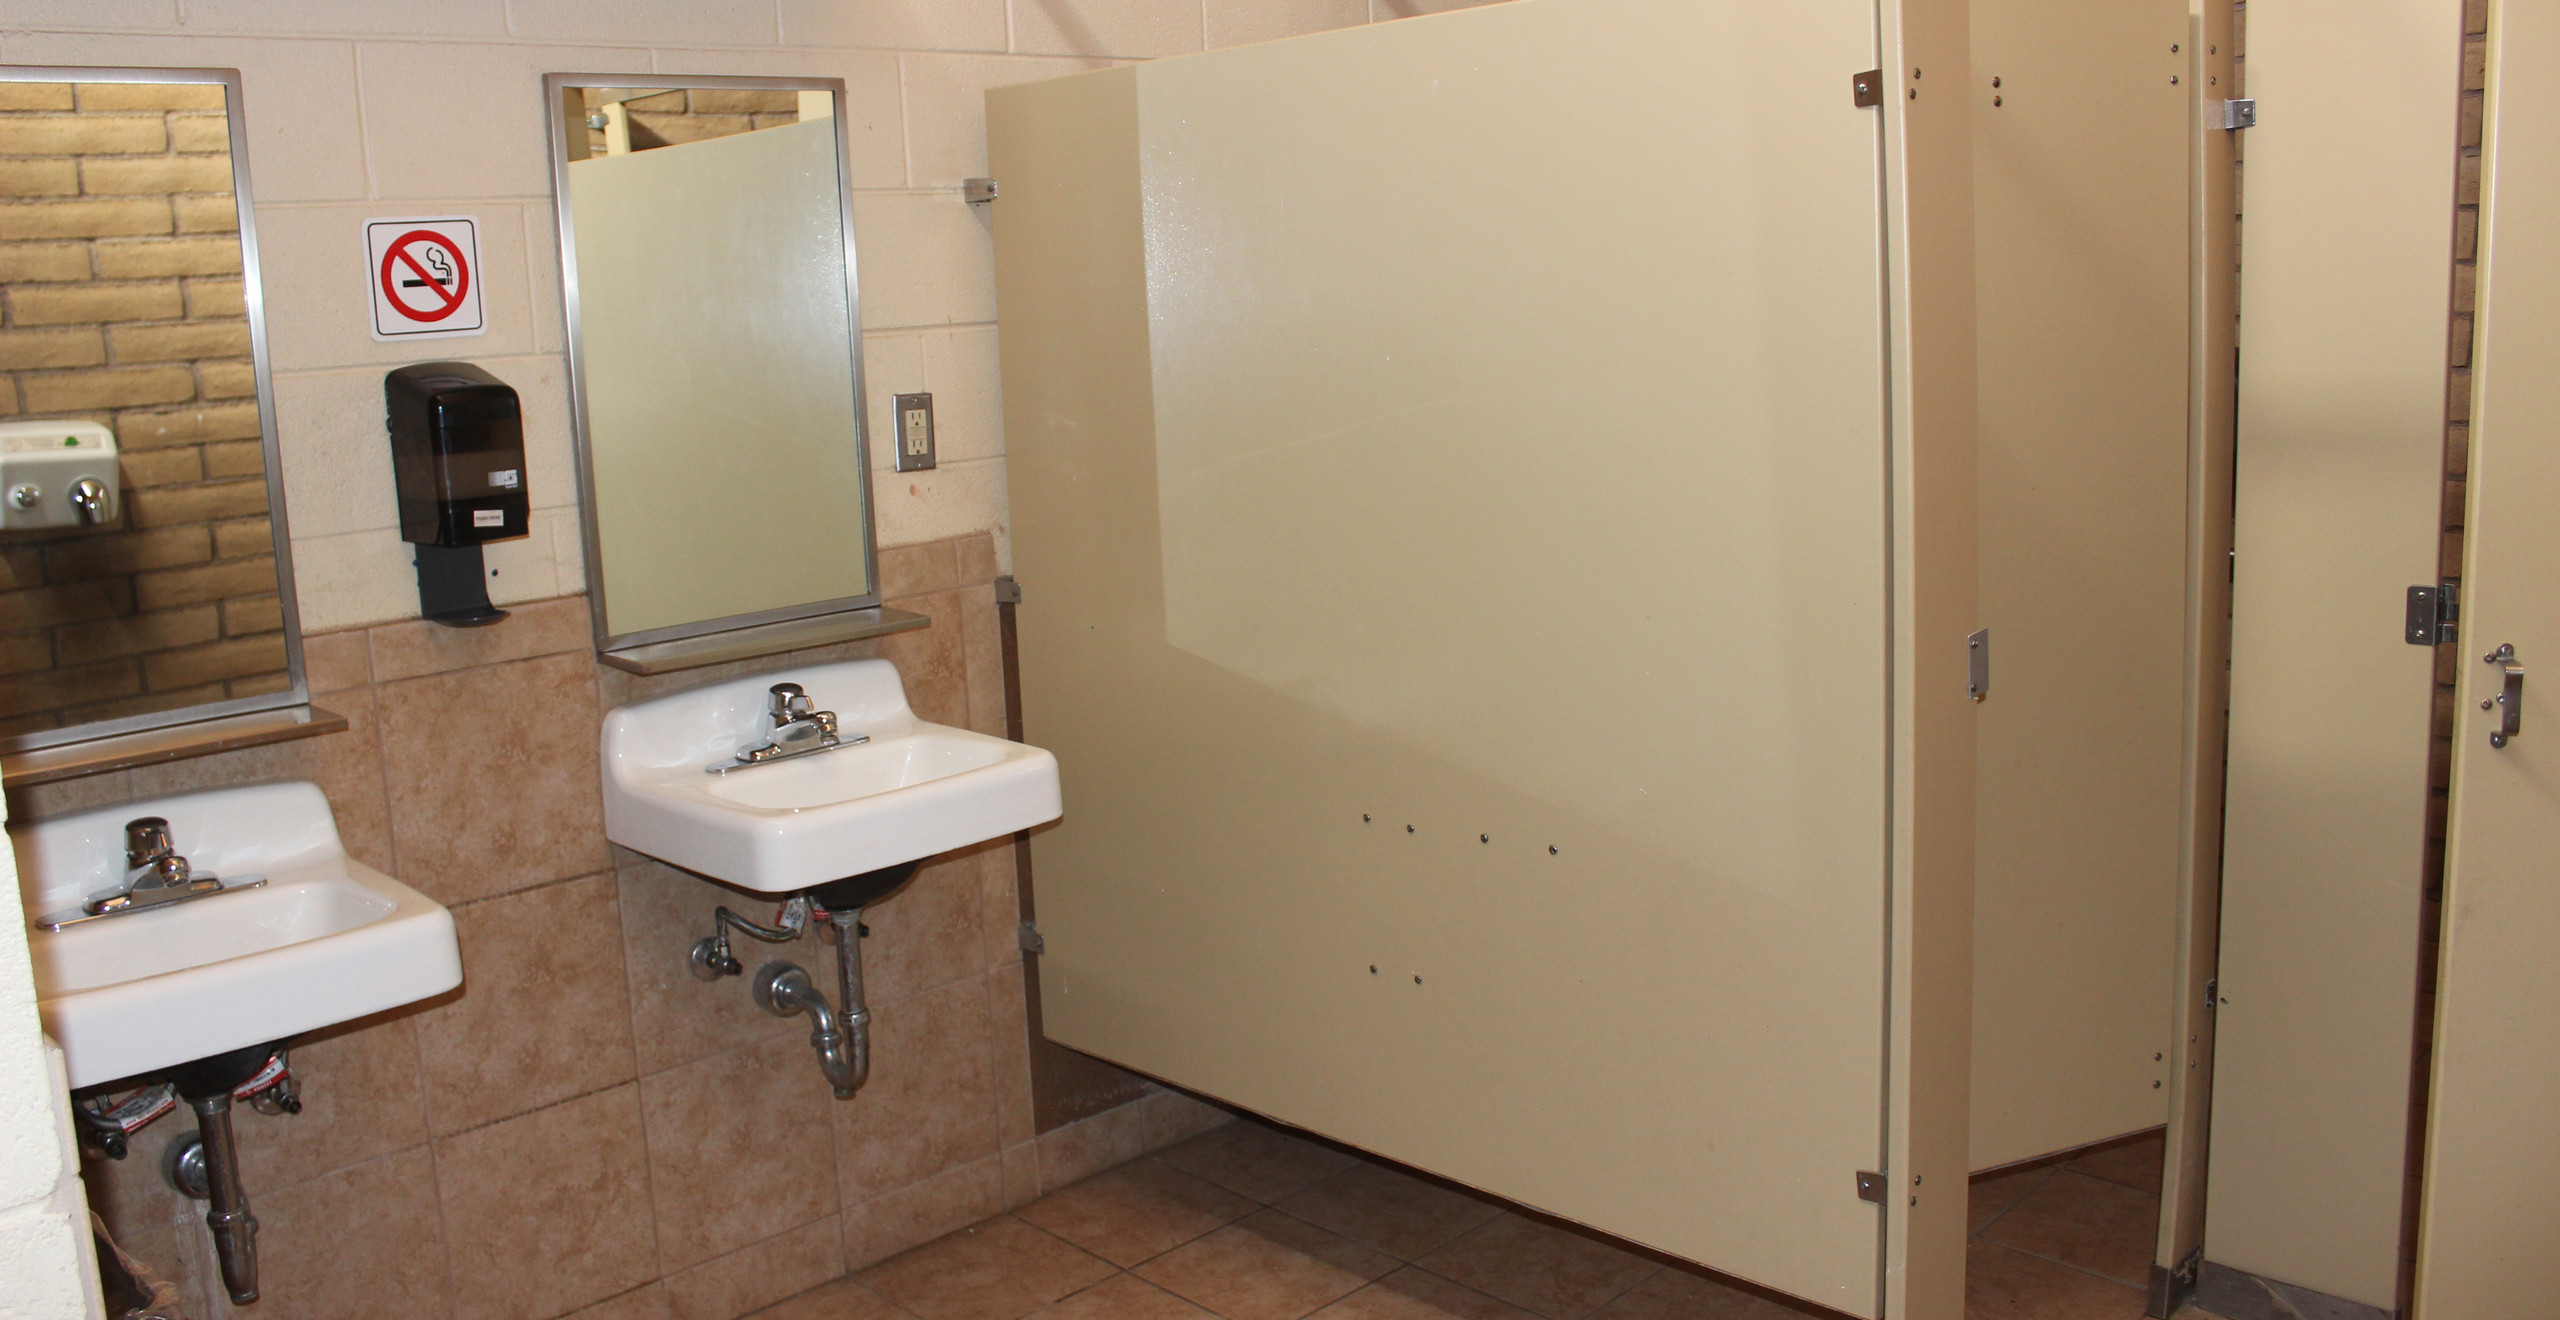 Bathrooms at Ridgway State Park